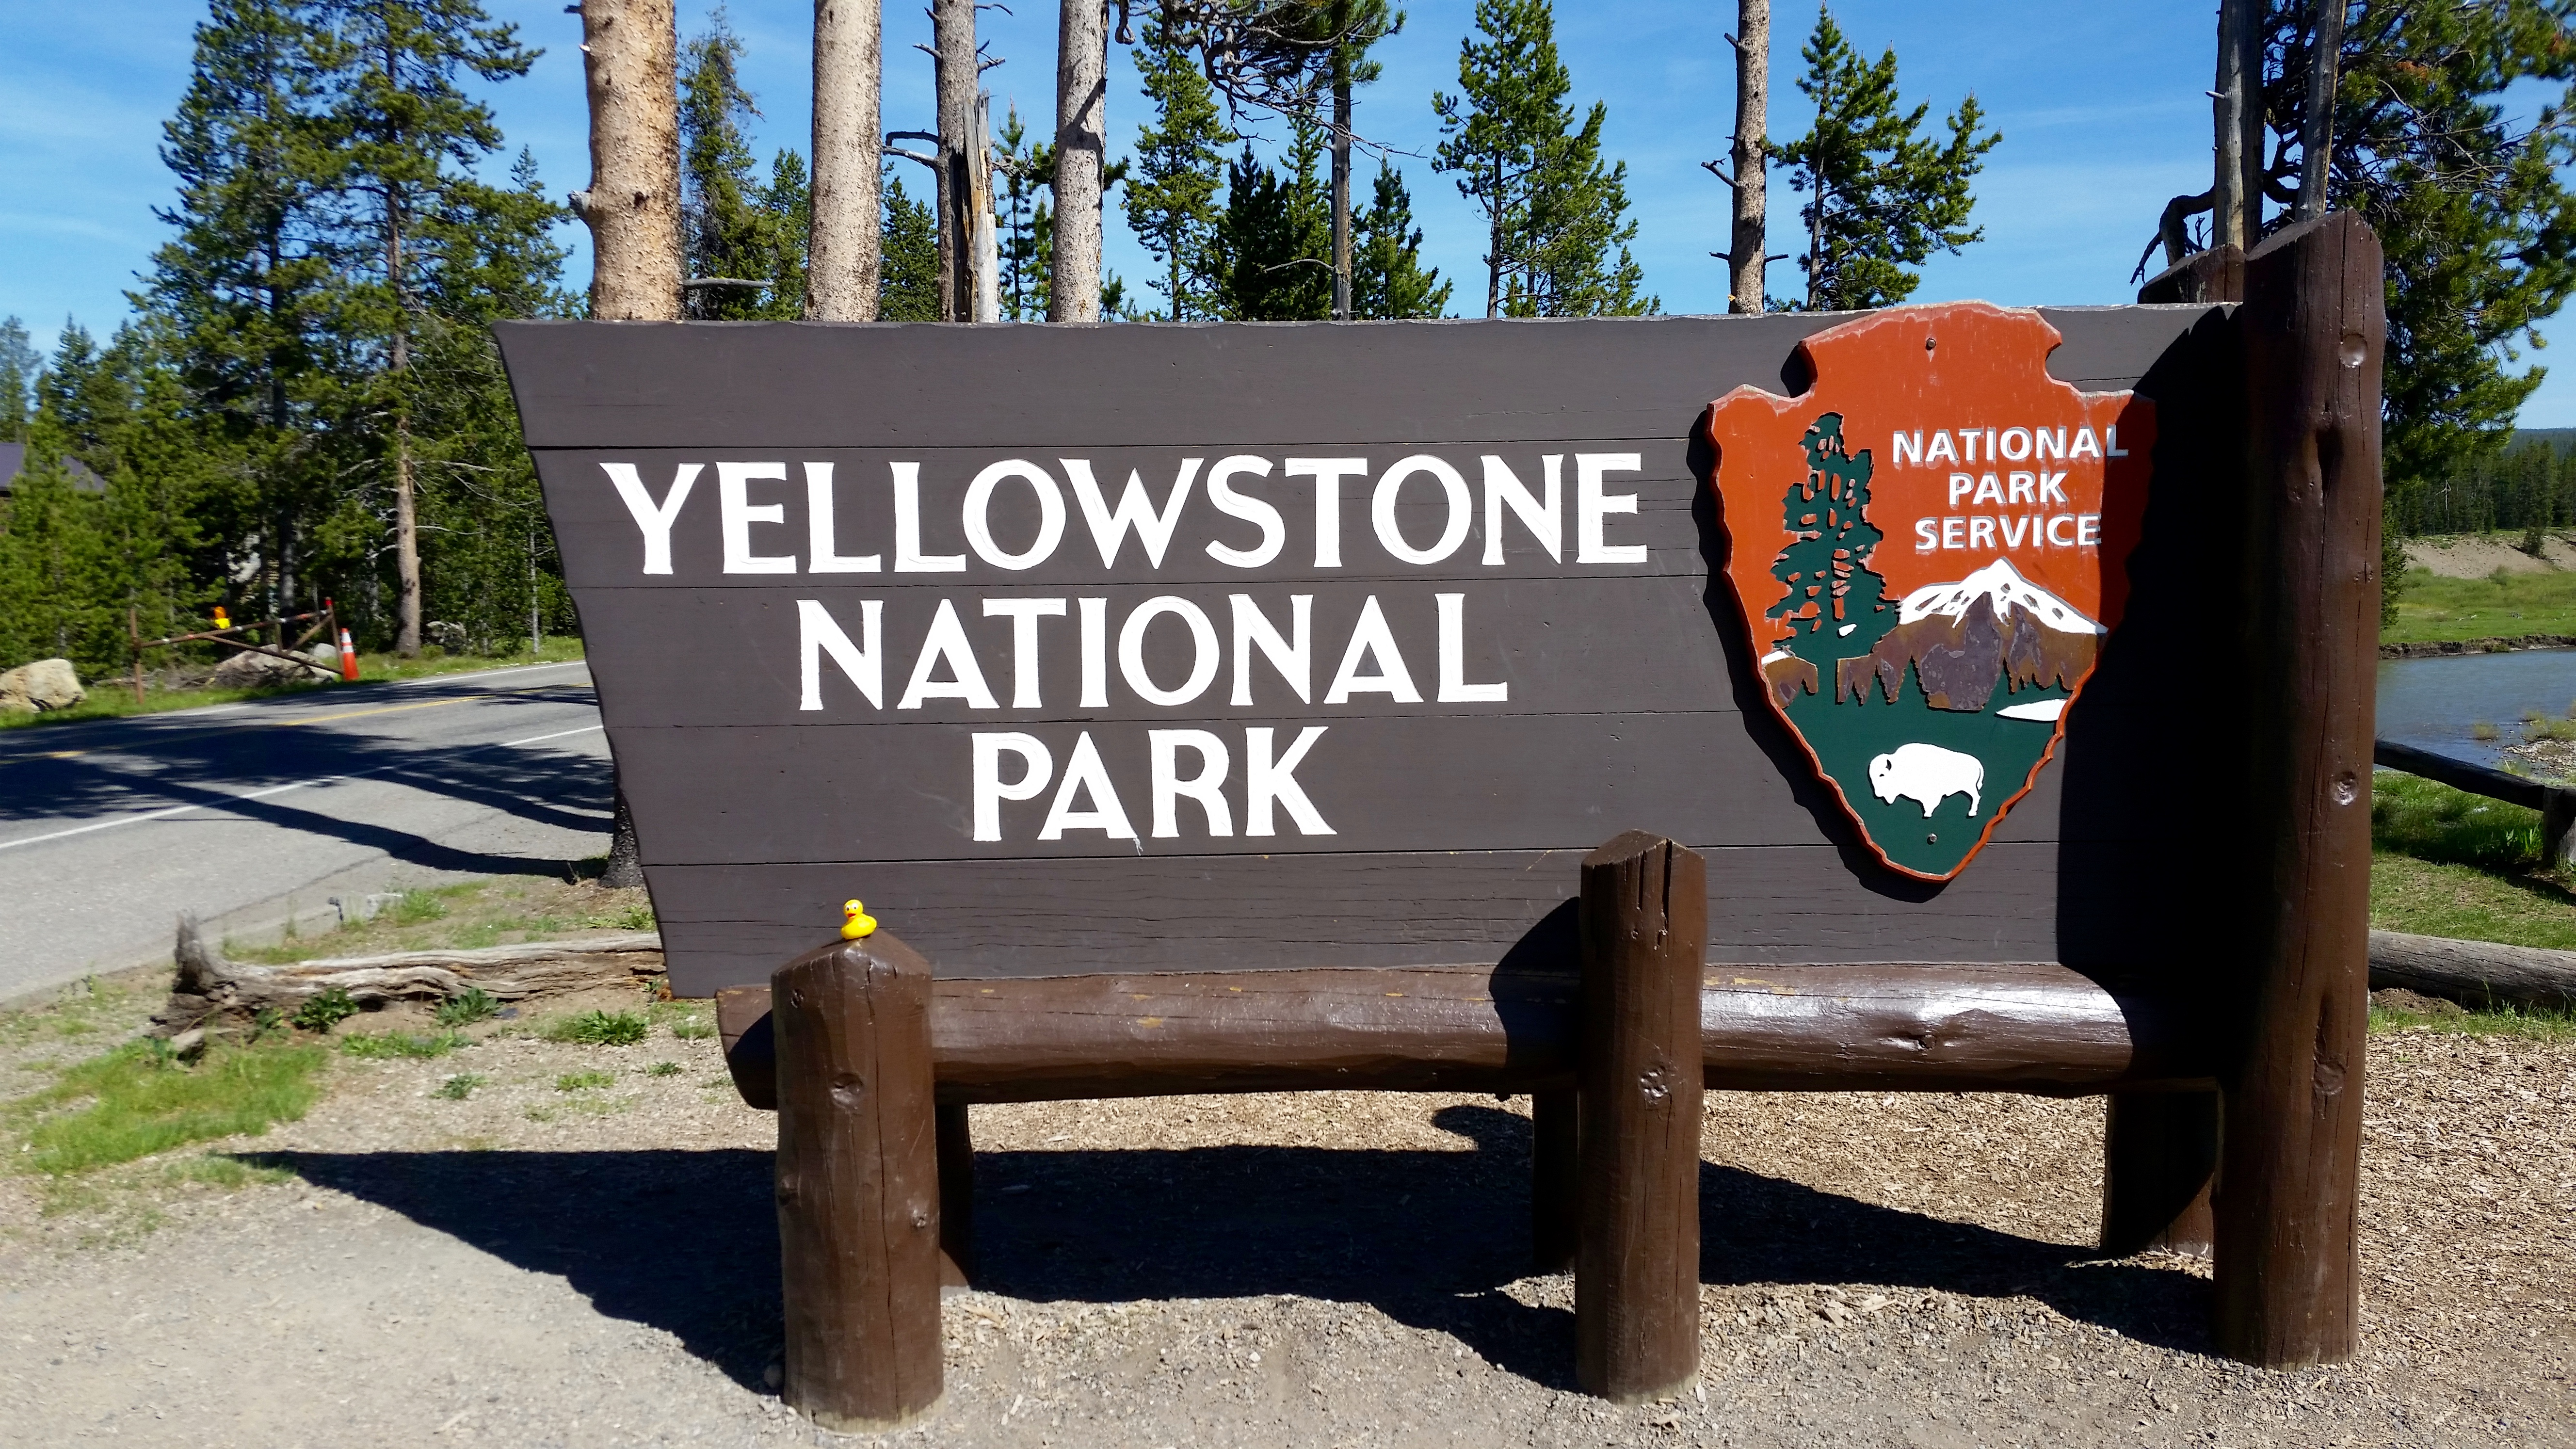 singles in yellowstone national park When yellowstone national park was created there were additional reliable sightings of wolves in the park, most believed to be singles or pairs.